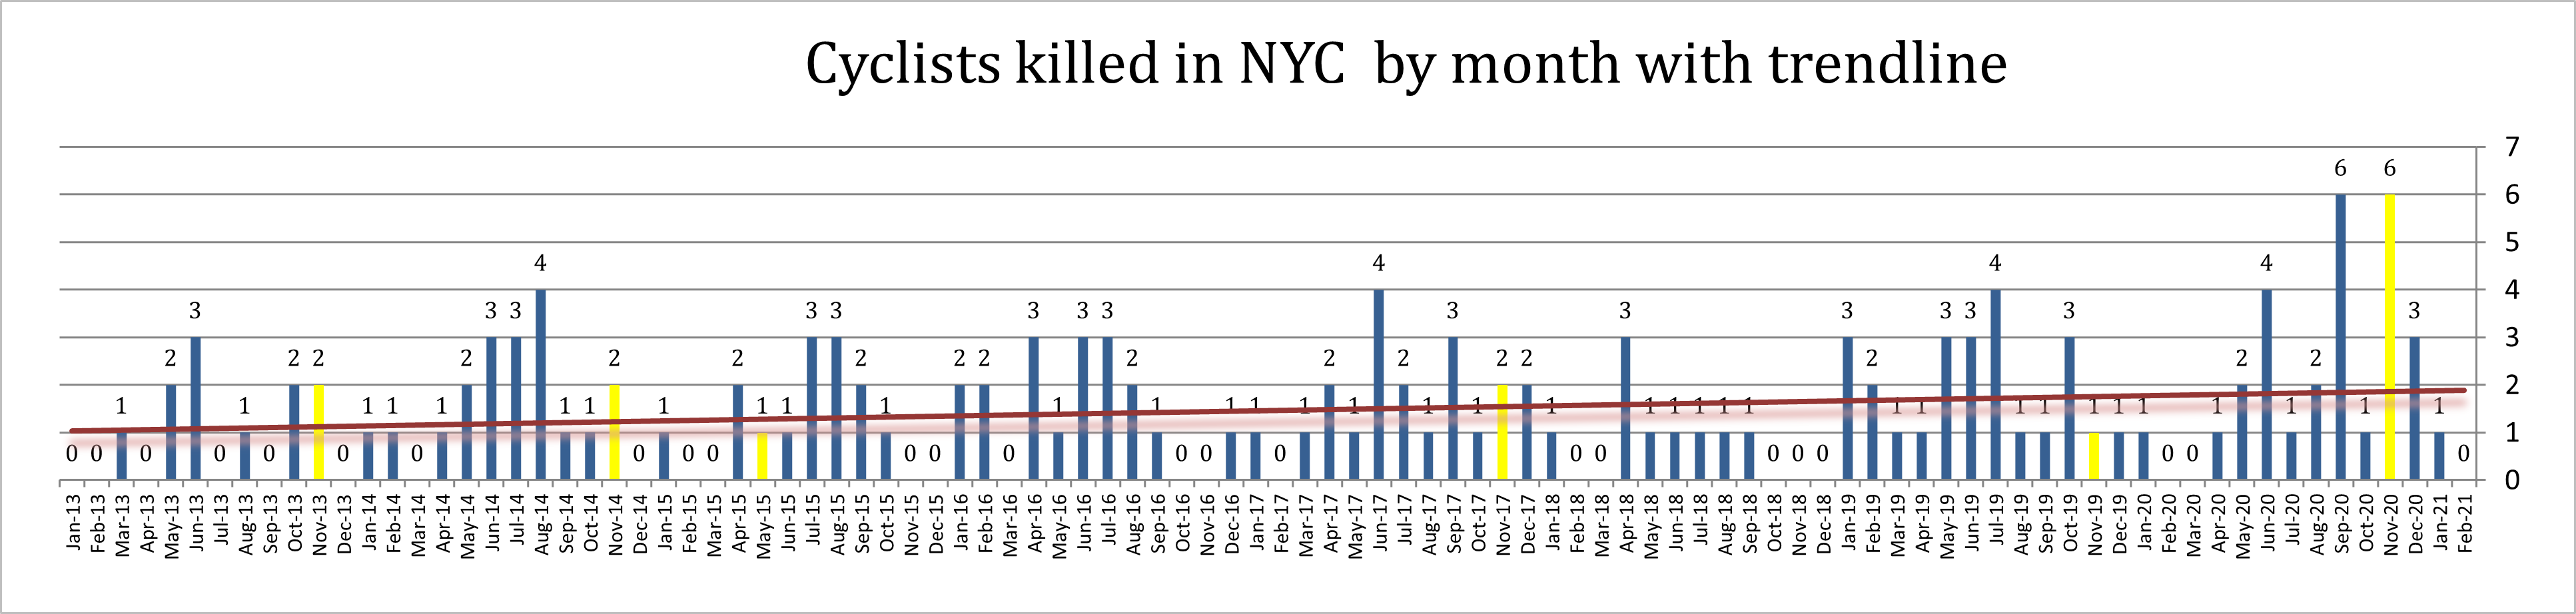 monthly cyclist fatalities in New York City February 2021